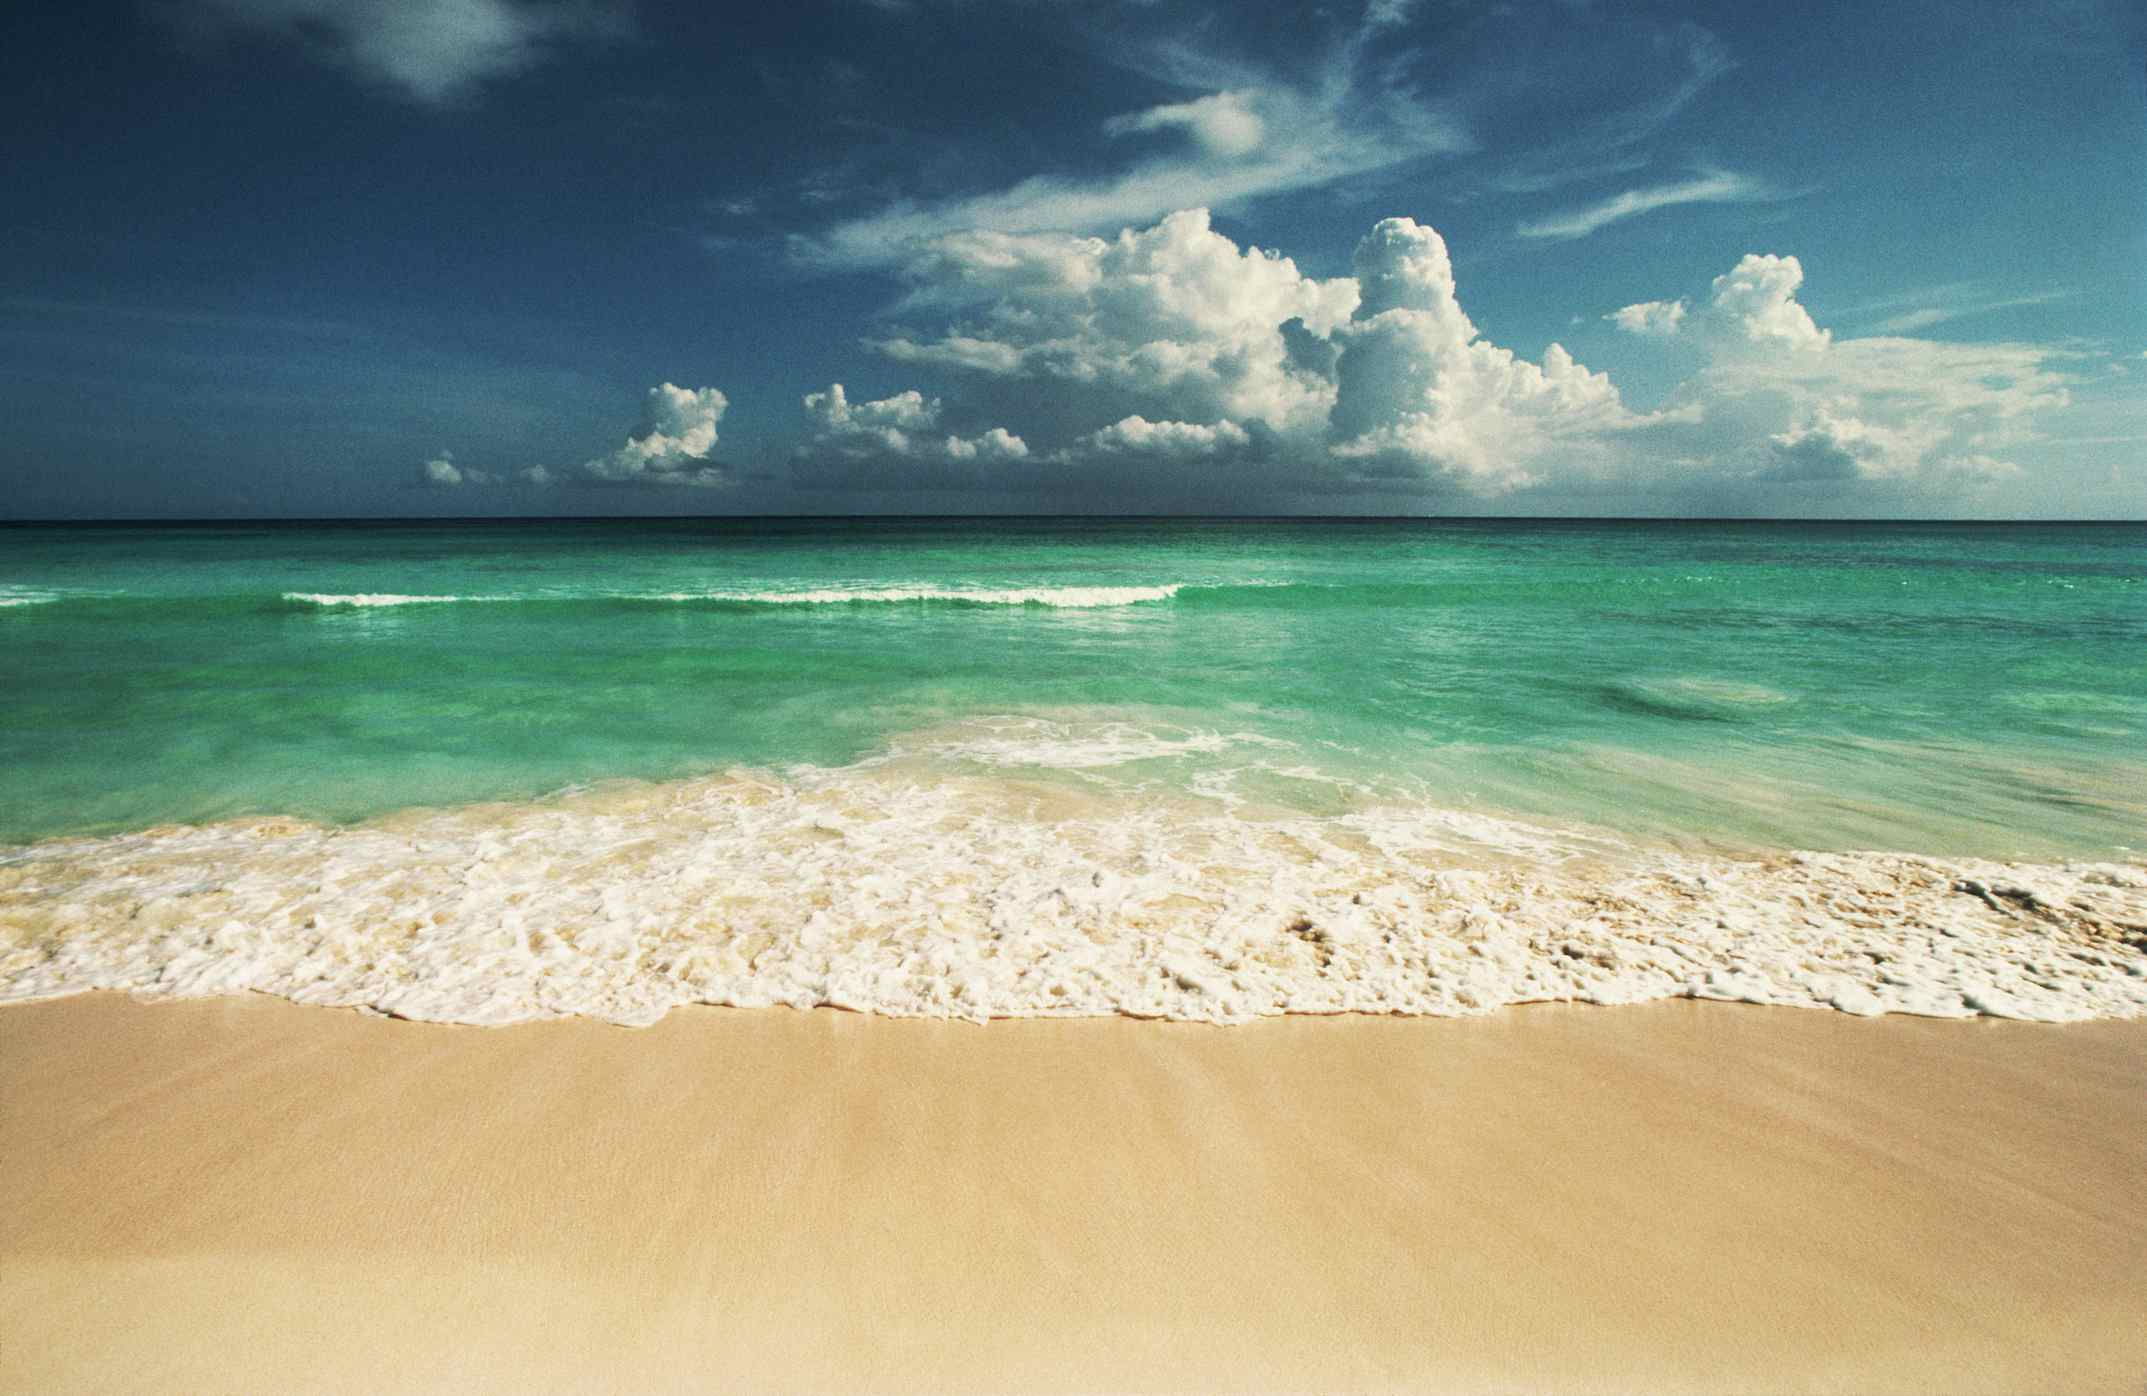 Beach with beautiful water at Playa del Carmen in Mexico